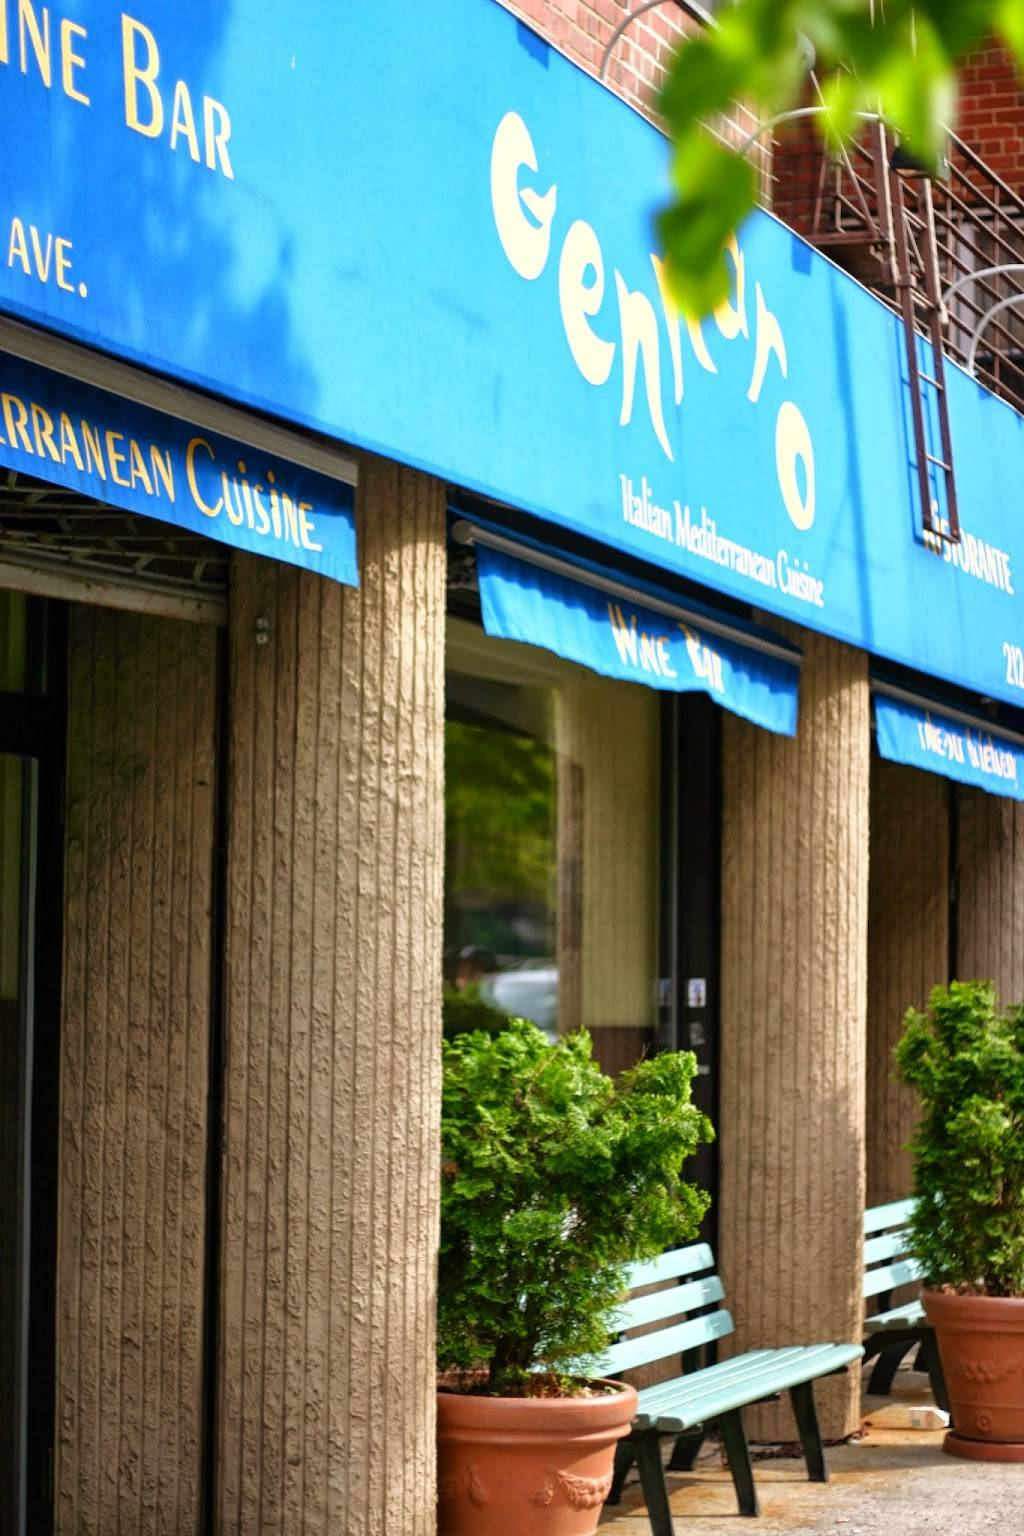 Gennaro | meal delivery | 665 Amsterdam Ave, New York, NY 10025, USA | 2126655348 OR +1 212-665-5348